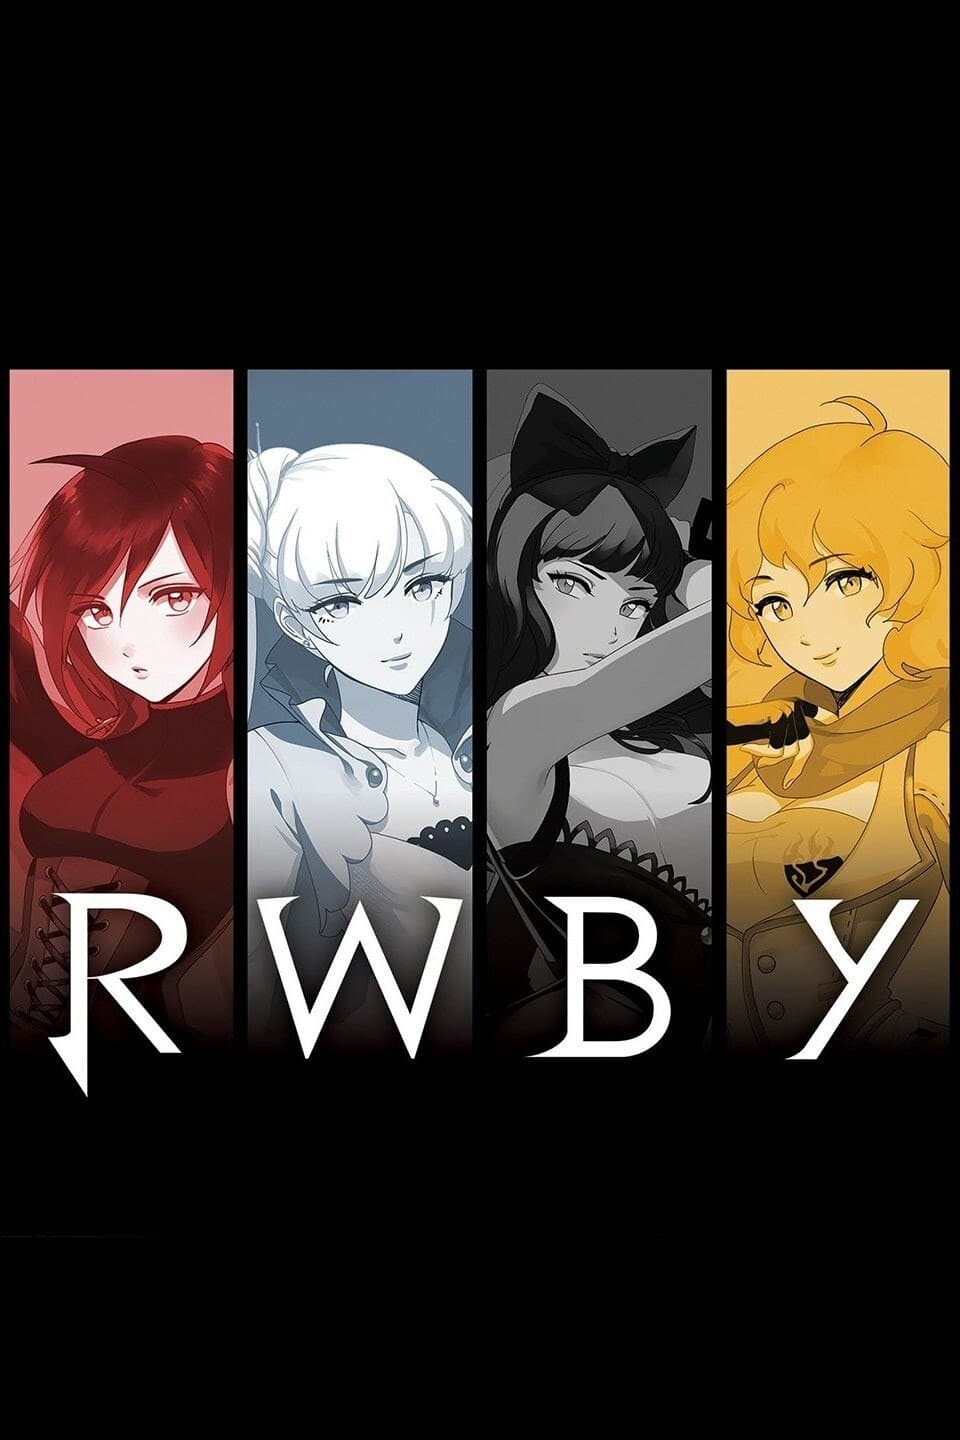 RWBY TV Shows About Combat